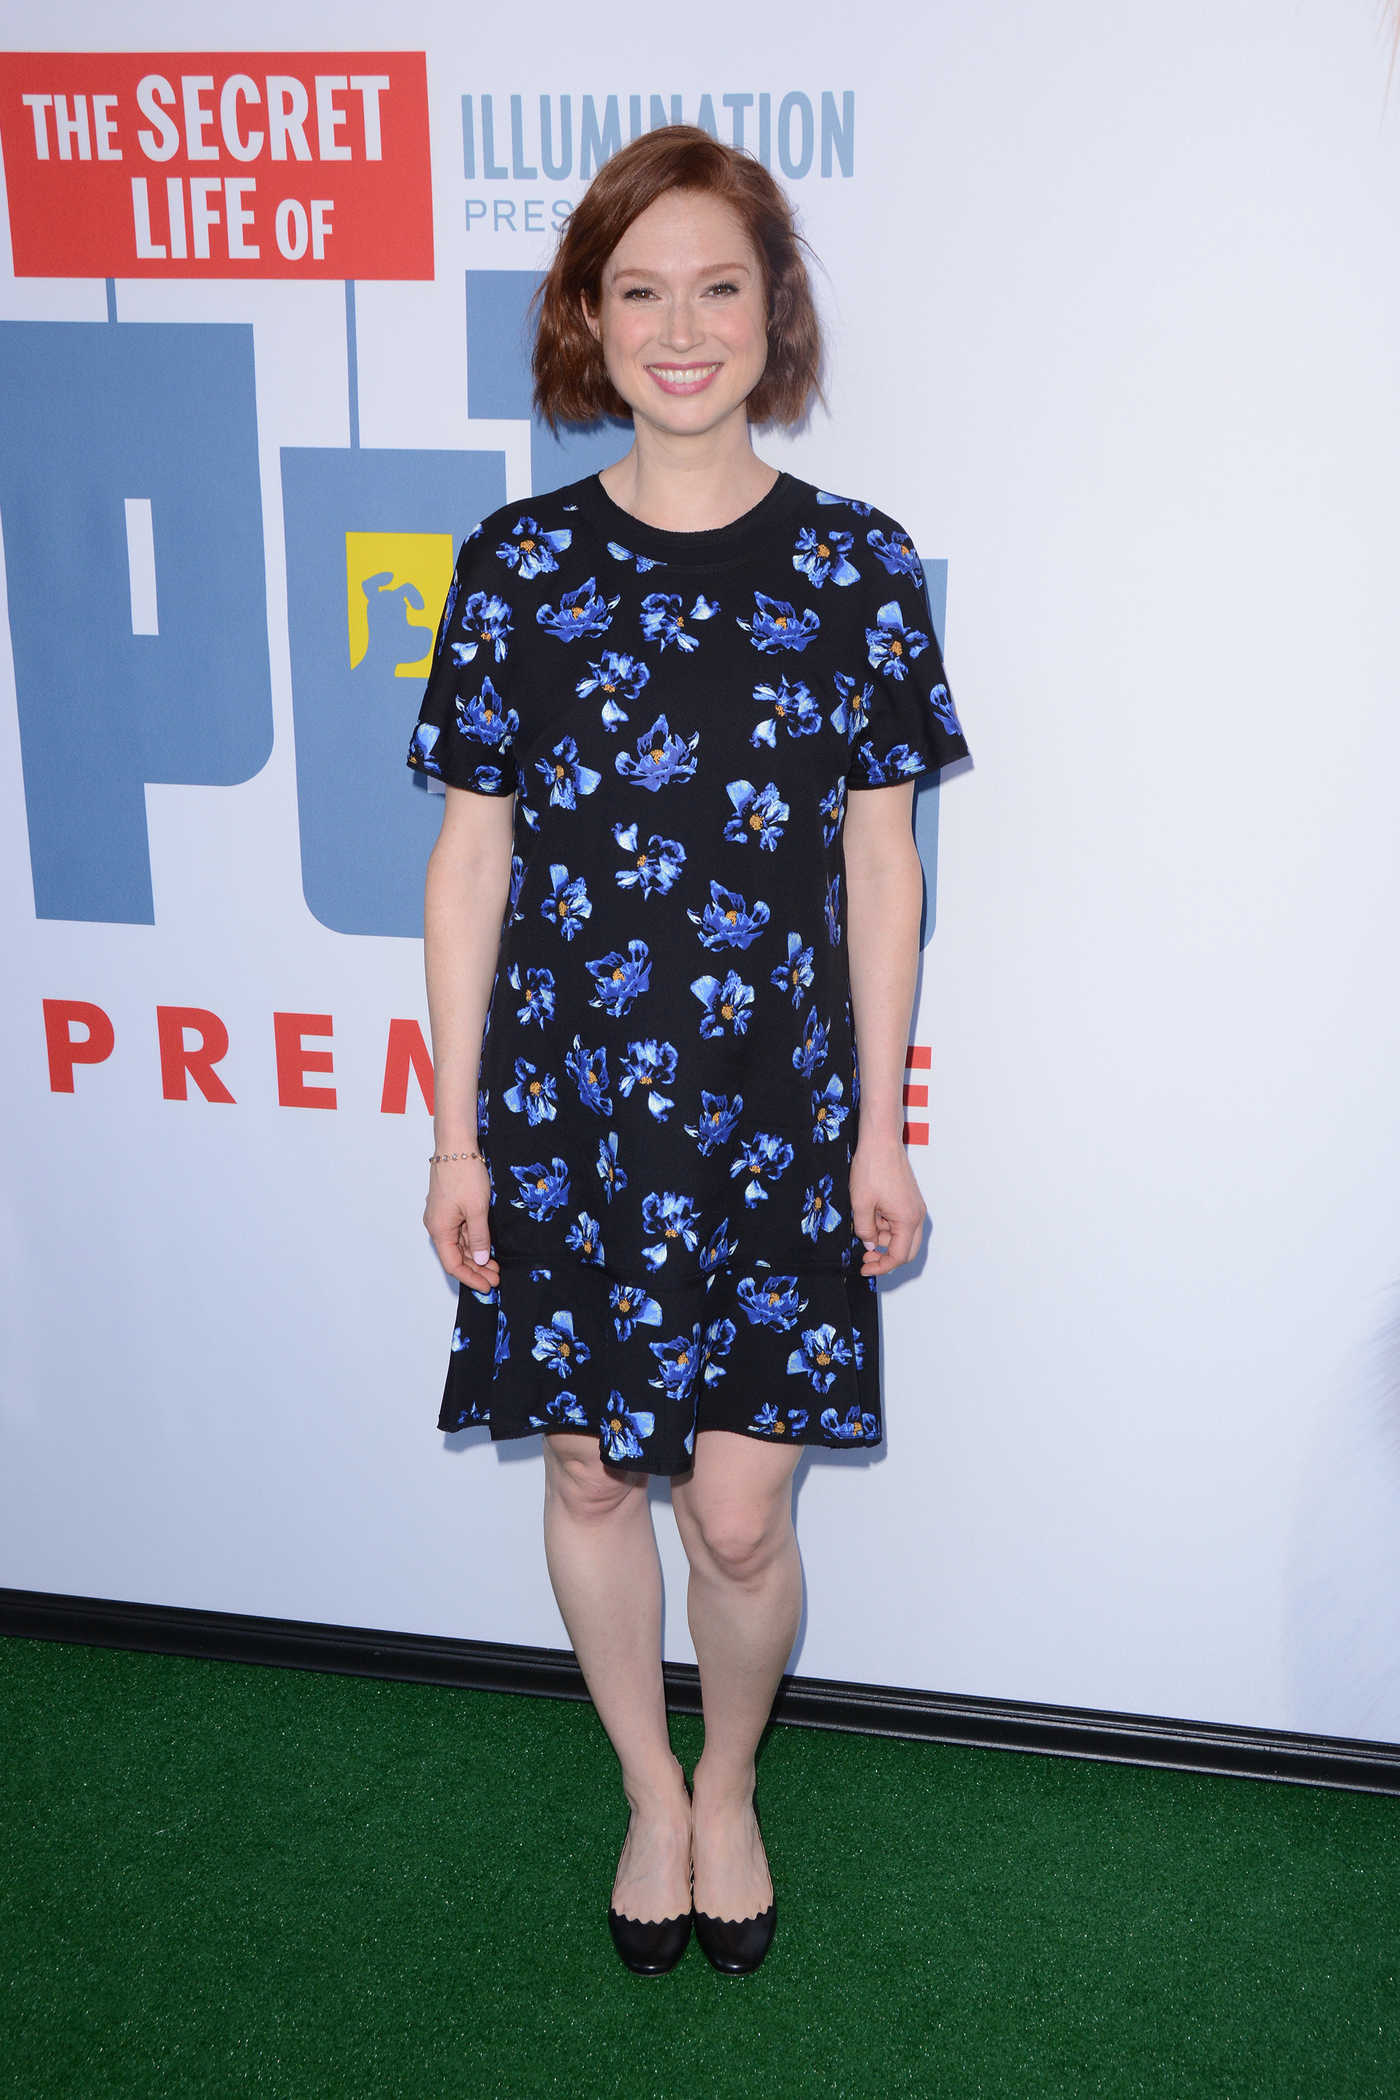 Ellie Kemper at the Secret Life of Pets Premiere in New York City 06/25/2016